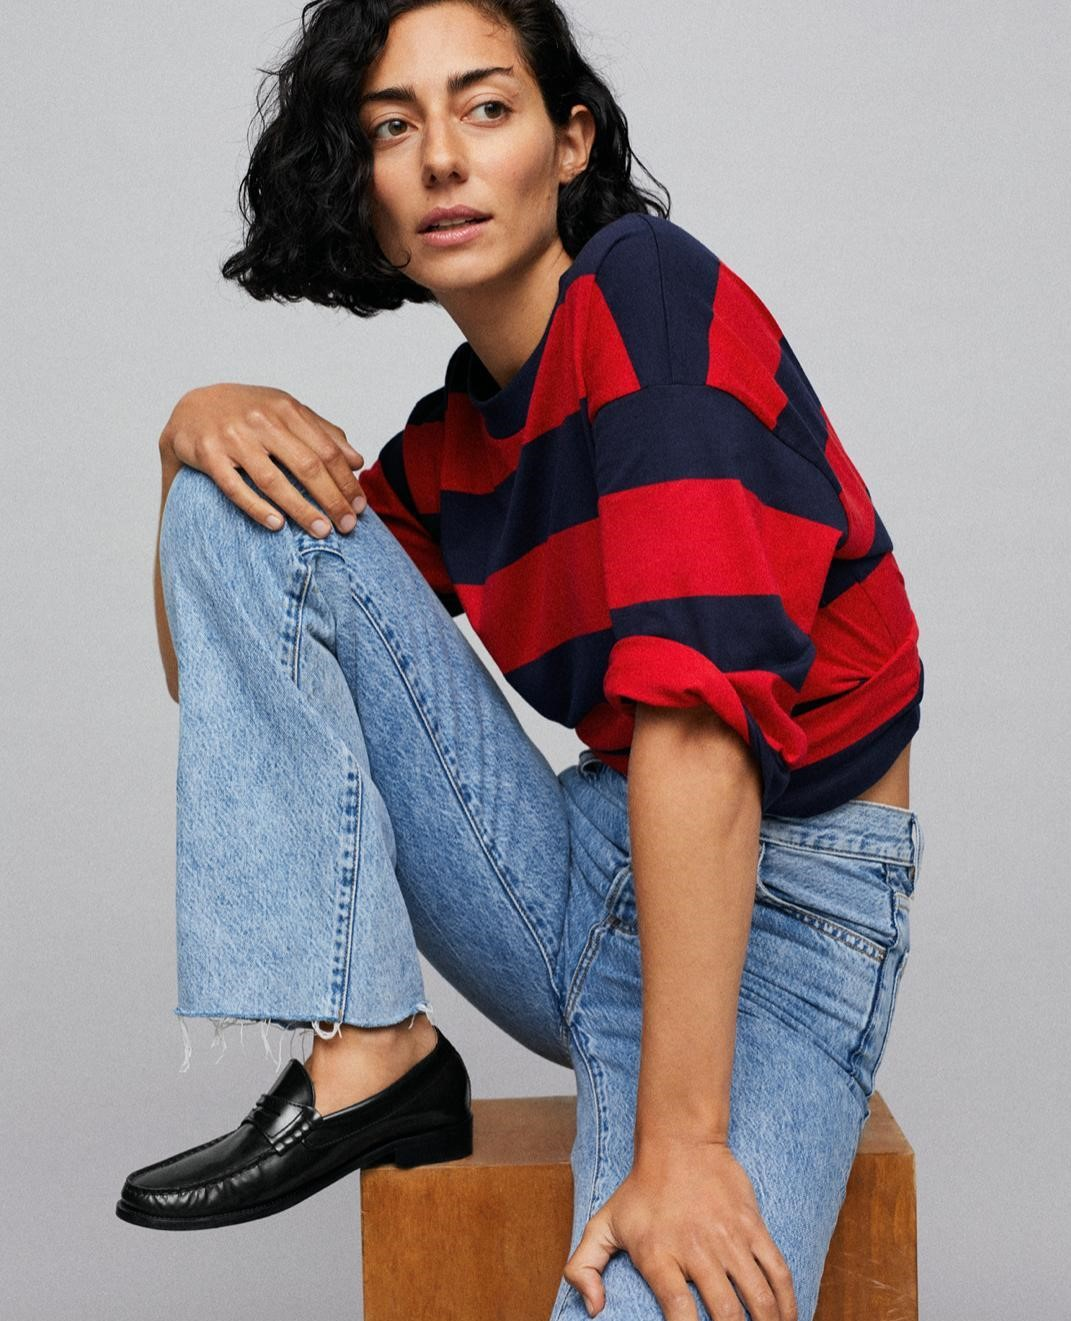 jeans autunno 2021